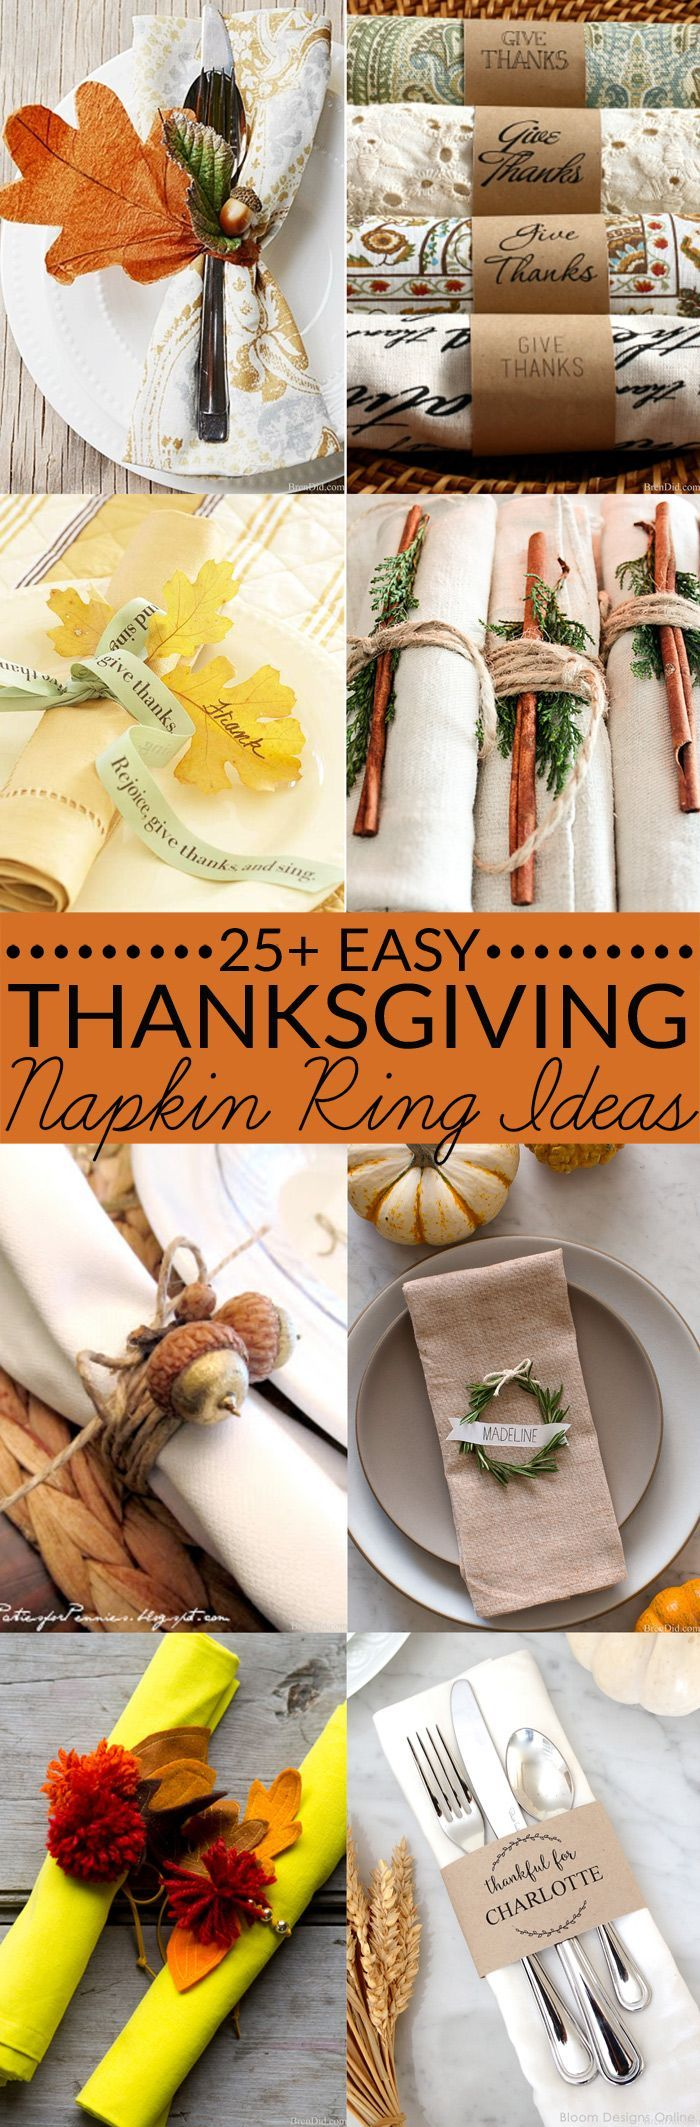 25+ DIY Thanksgiving Napkin Ring Ideas with Free Printables